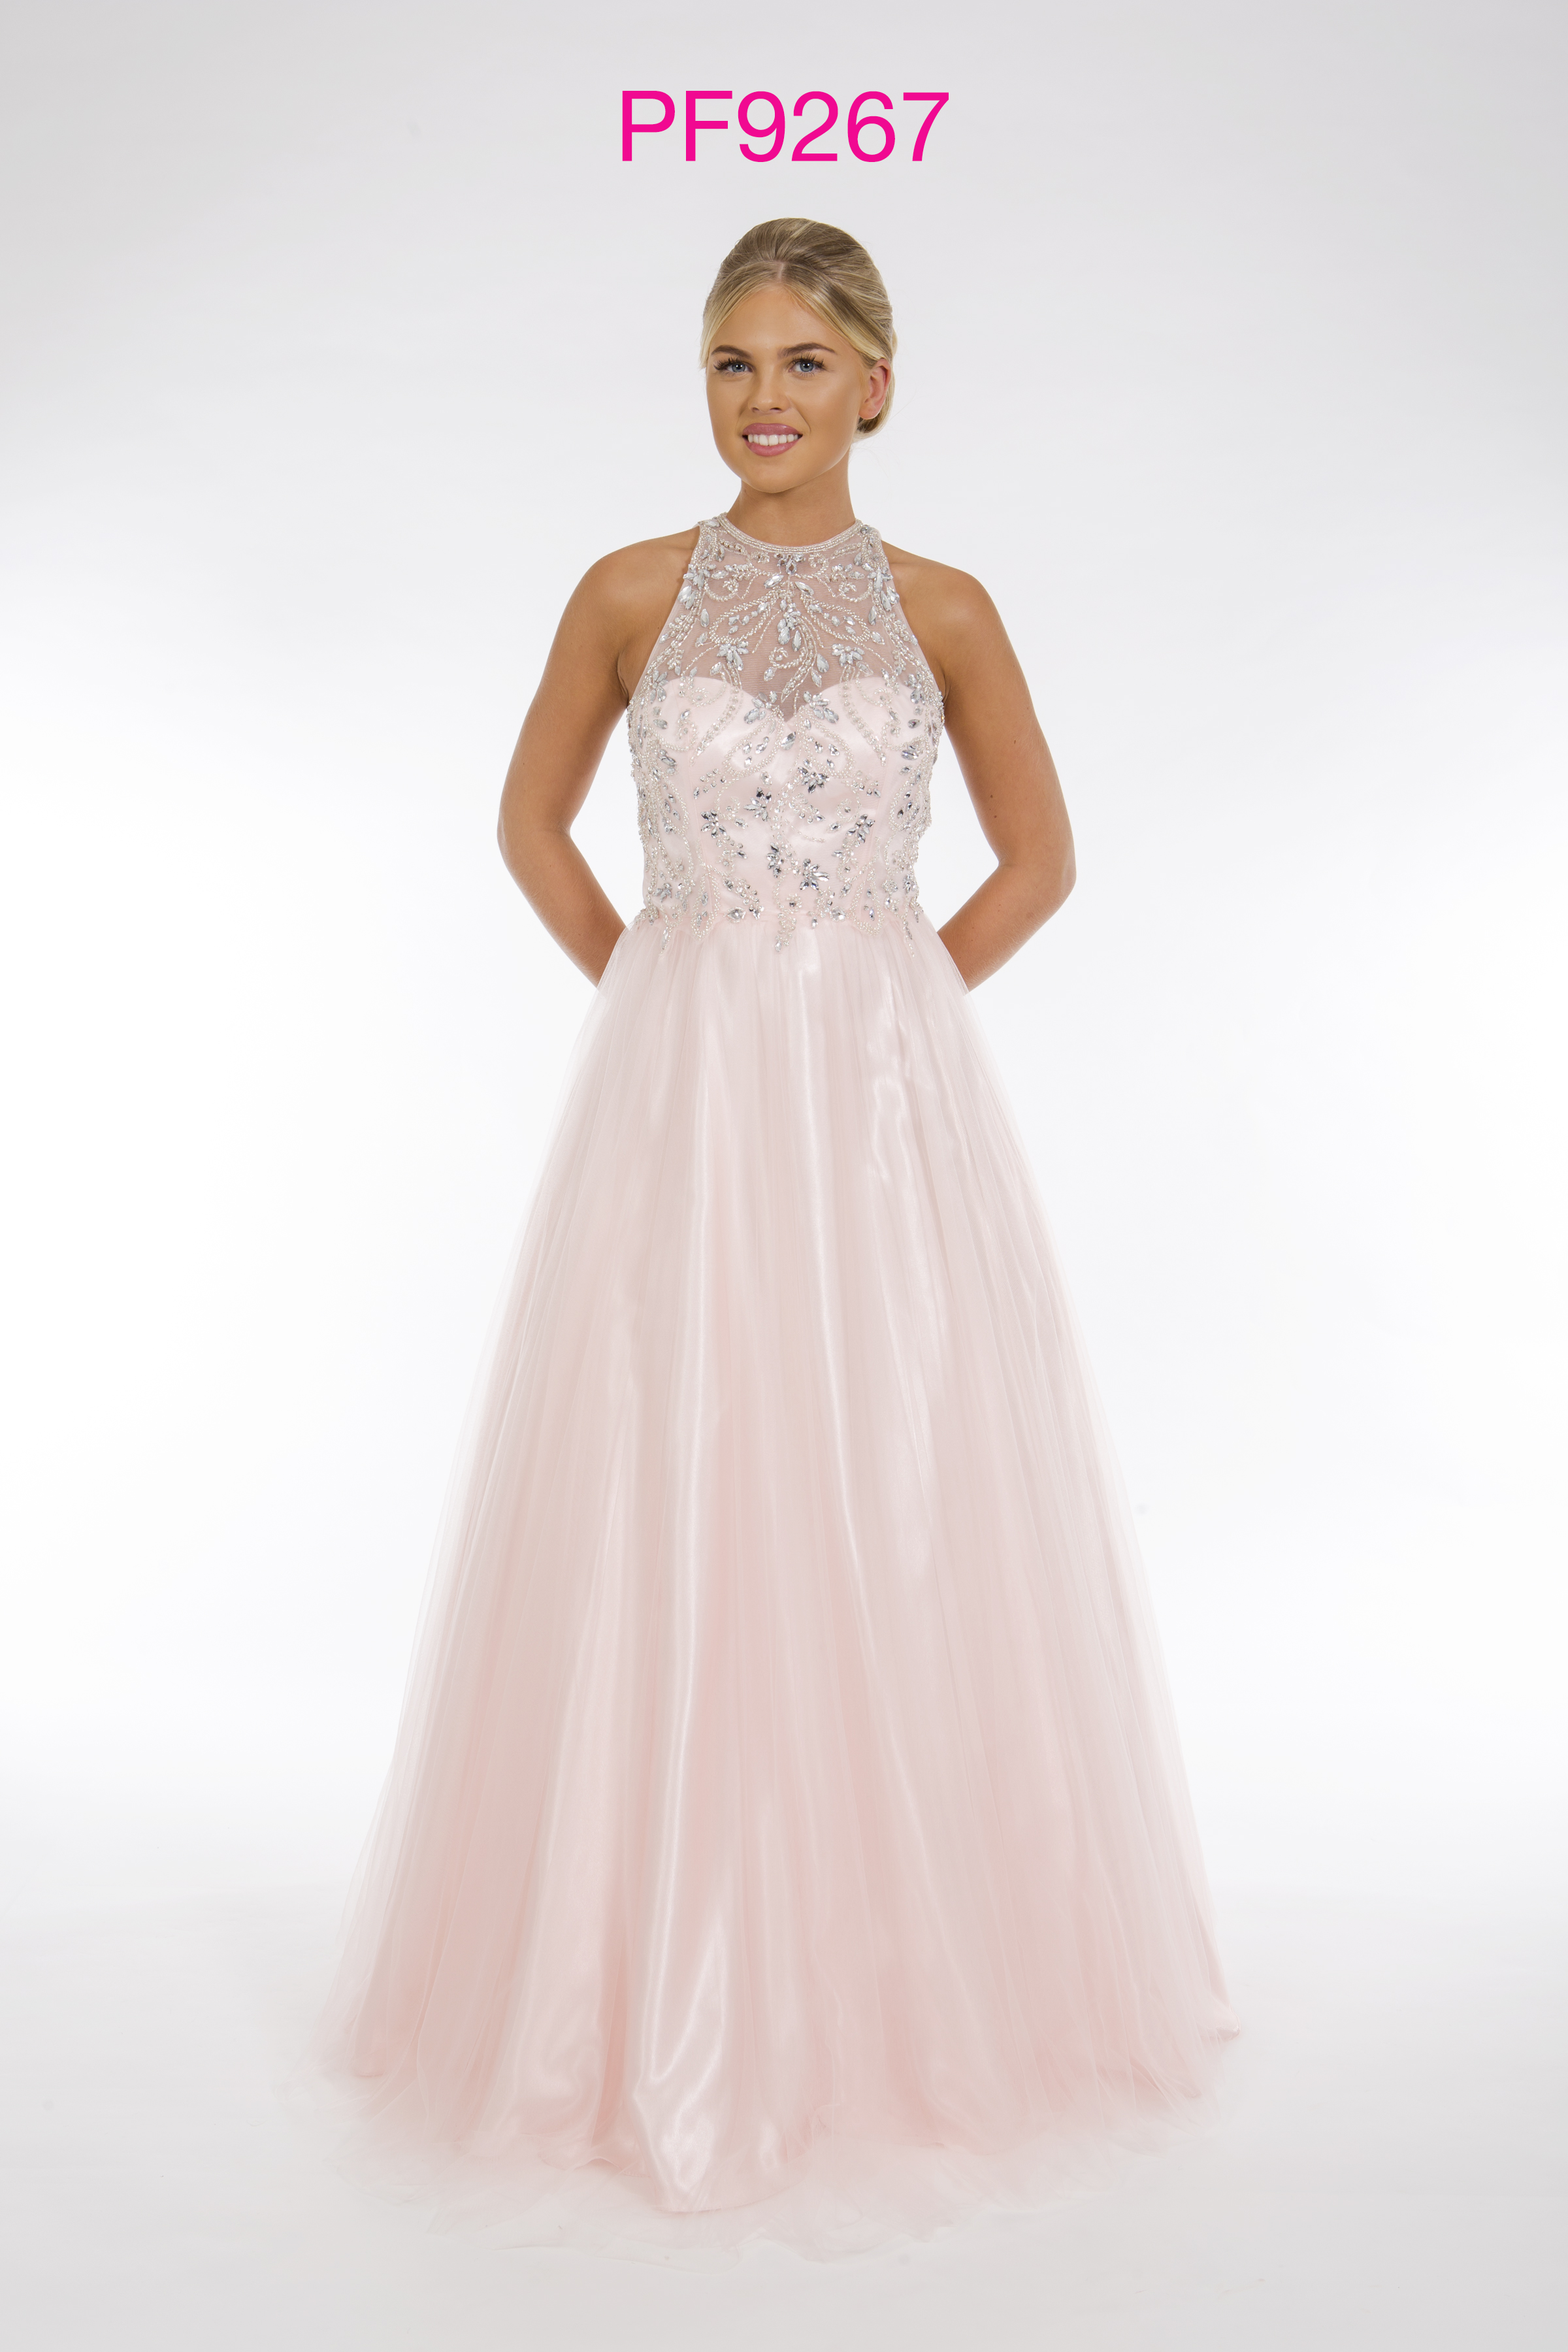 Prom Frocks PF9267 Pale Pink Prom Dress - Prom Frocks UK ...